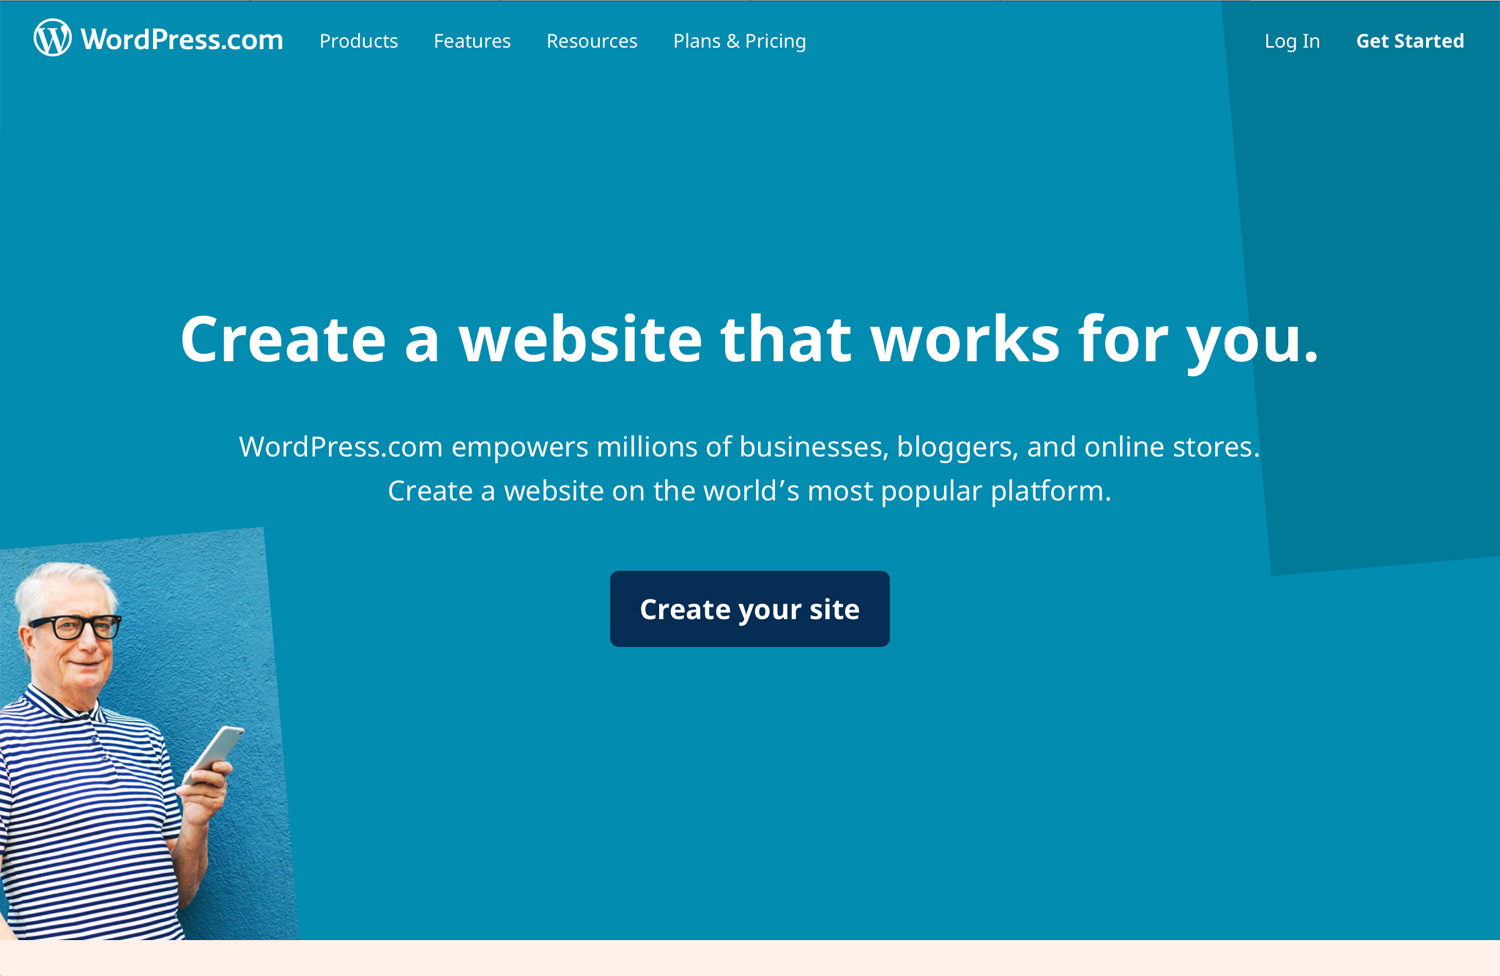 Wordpress dot com - How to Find the Right Website Platform that Works For You